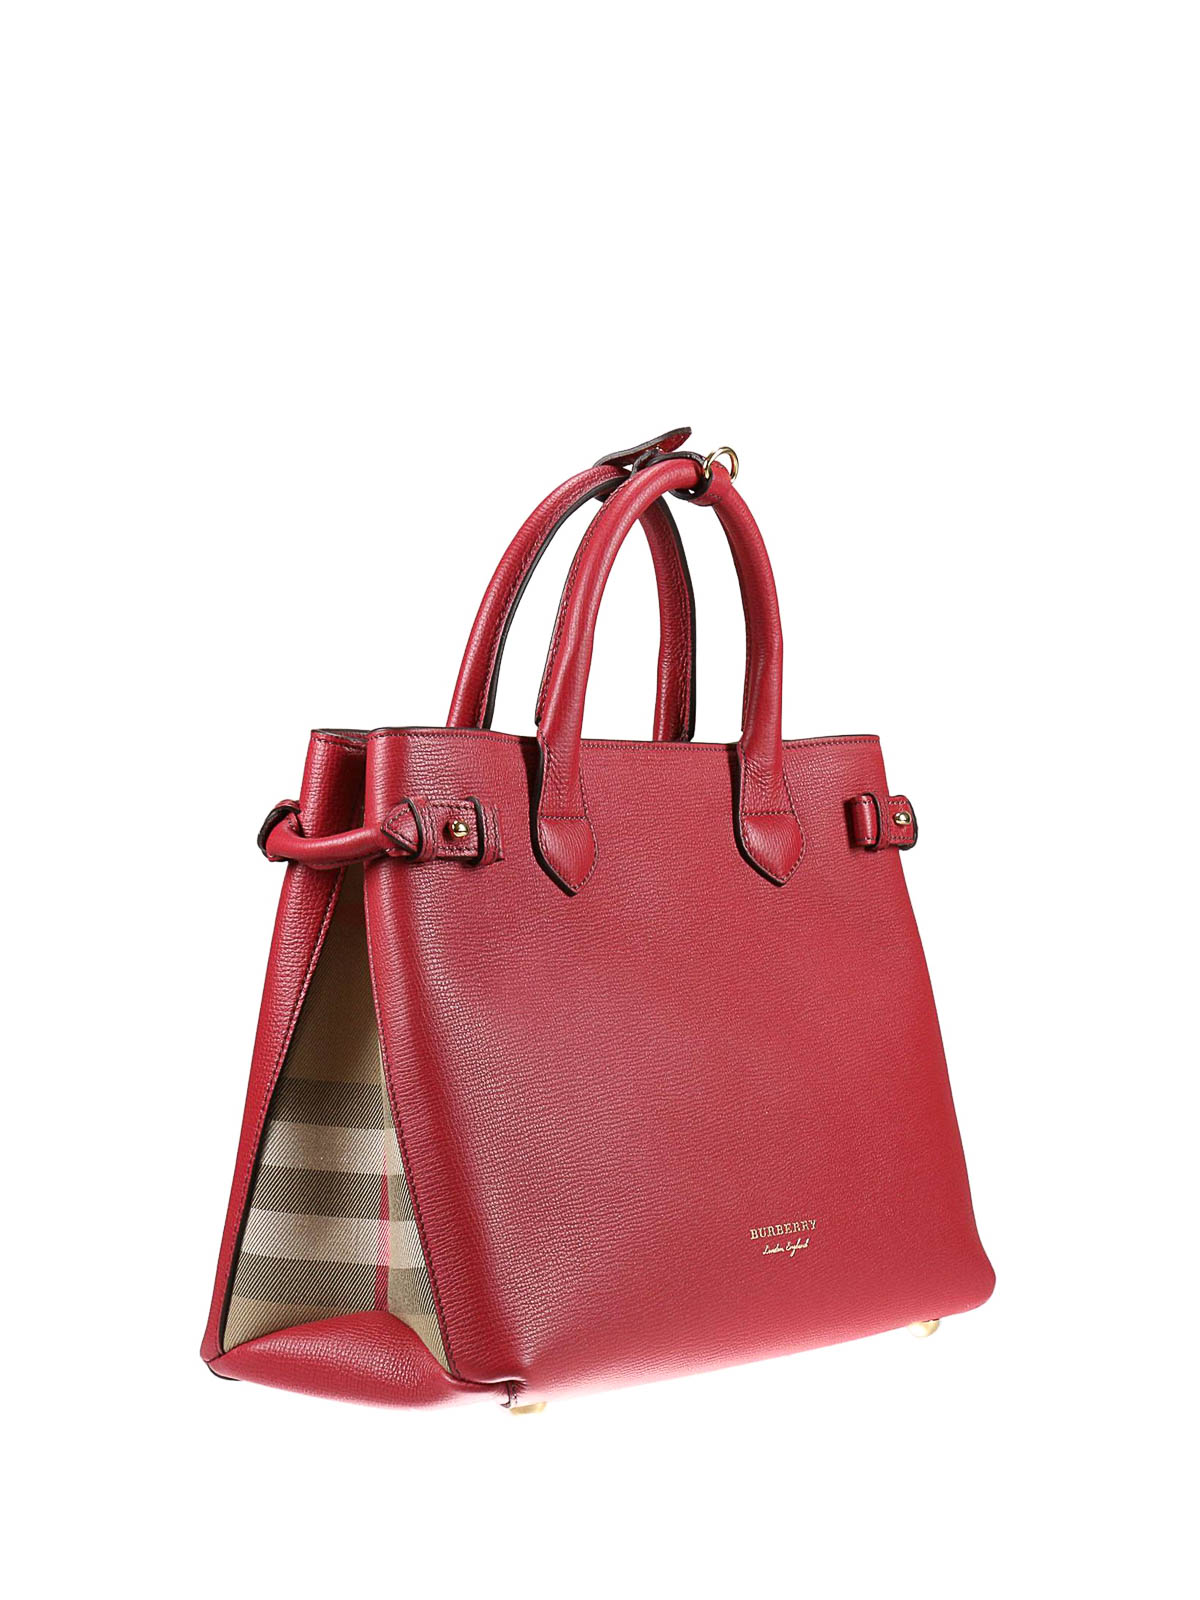 12d8b6dad3e0 Burberry Banner Medium Leather Shoulder Bag   The banner medium leather bag  by burberry totes bags